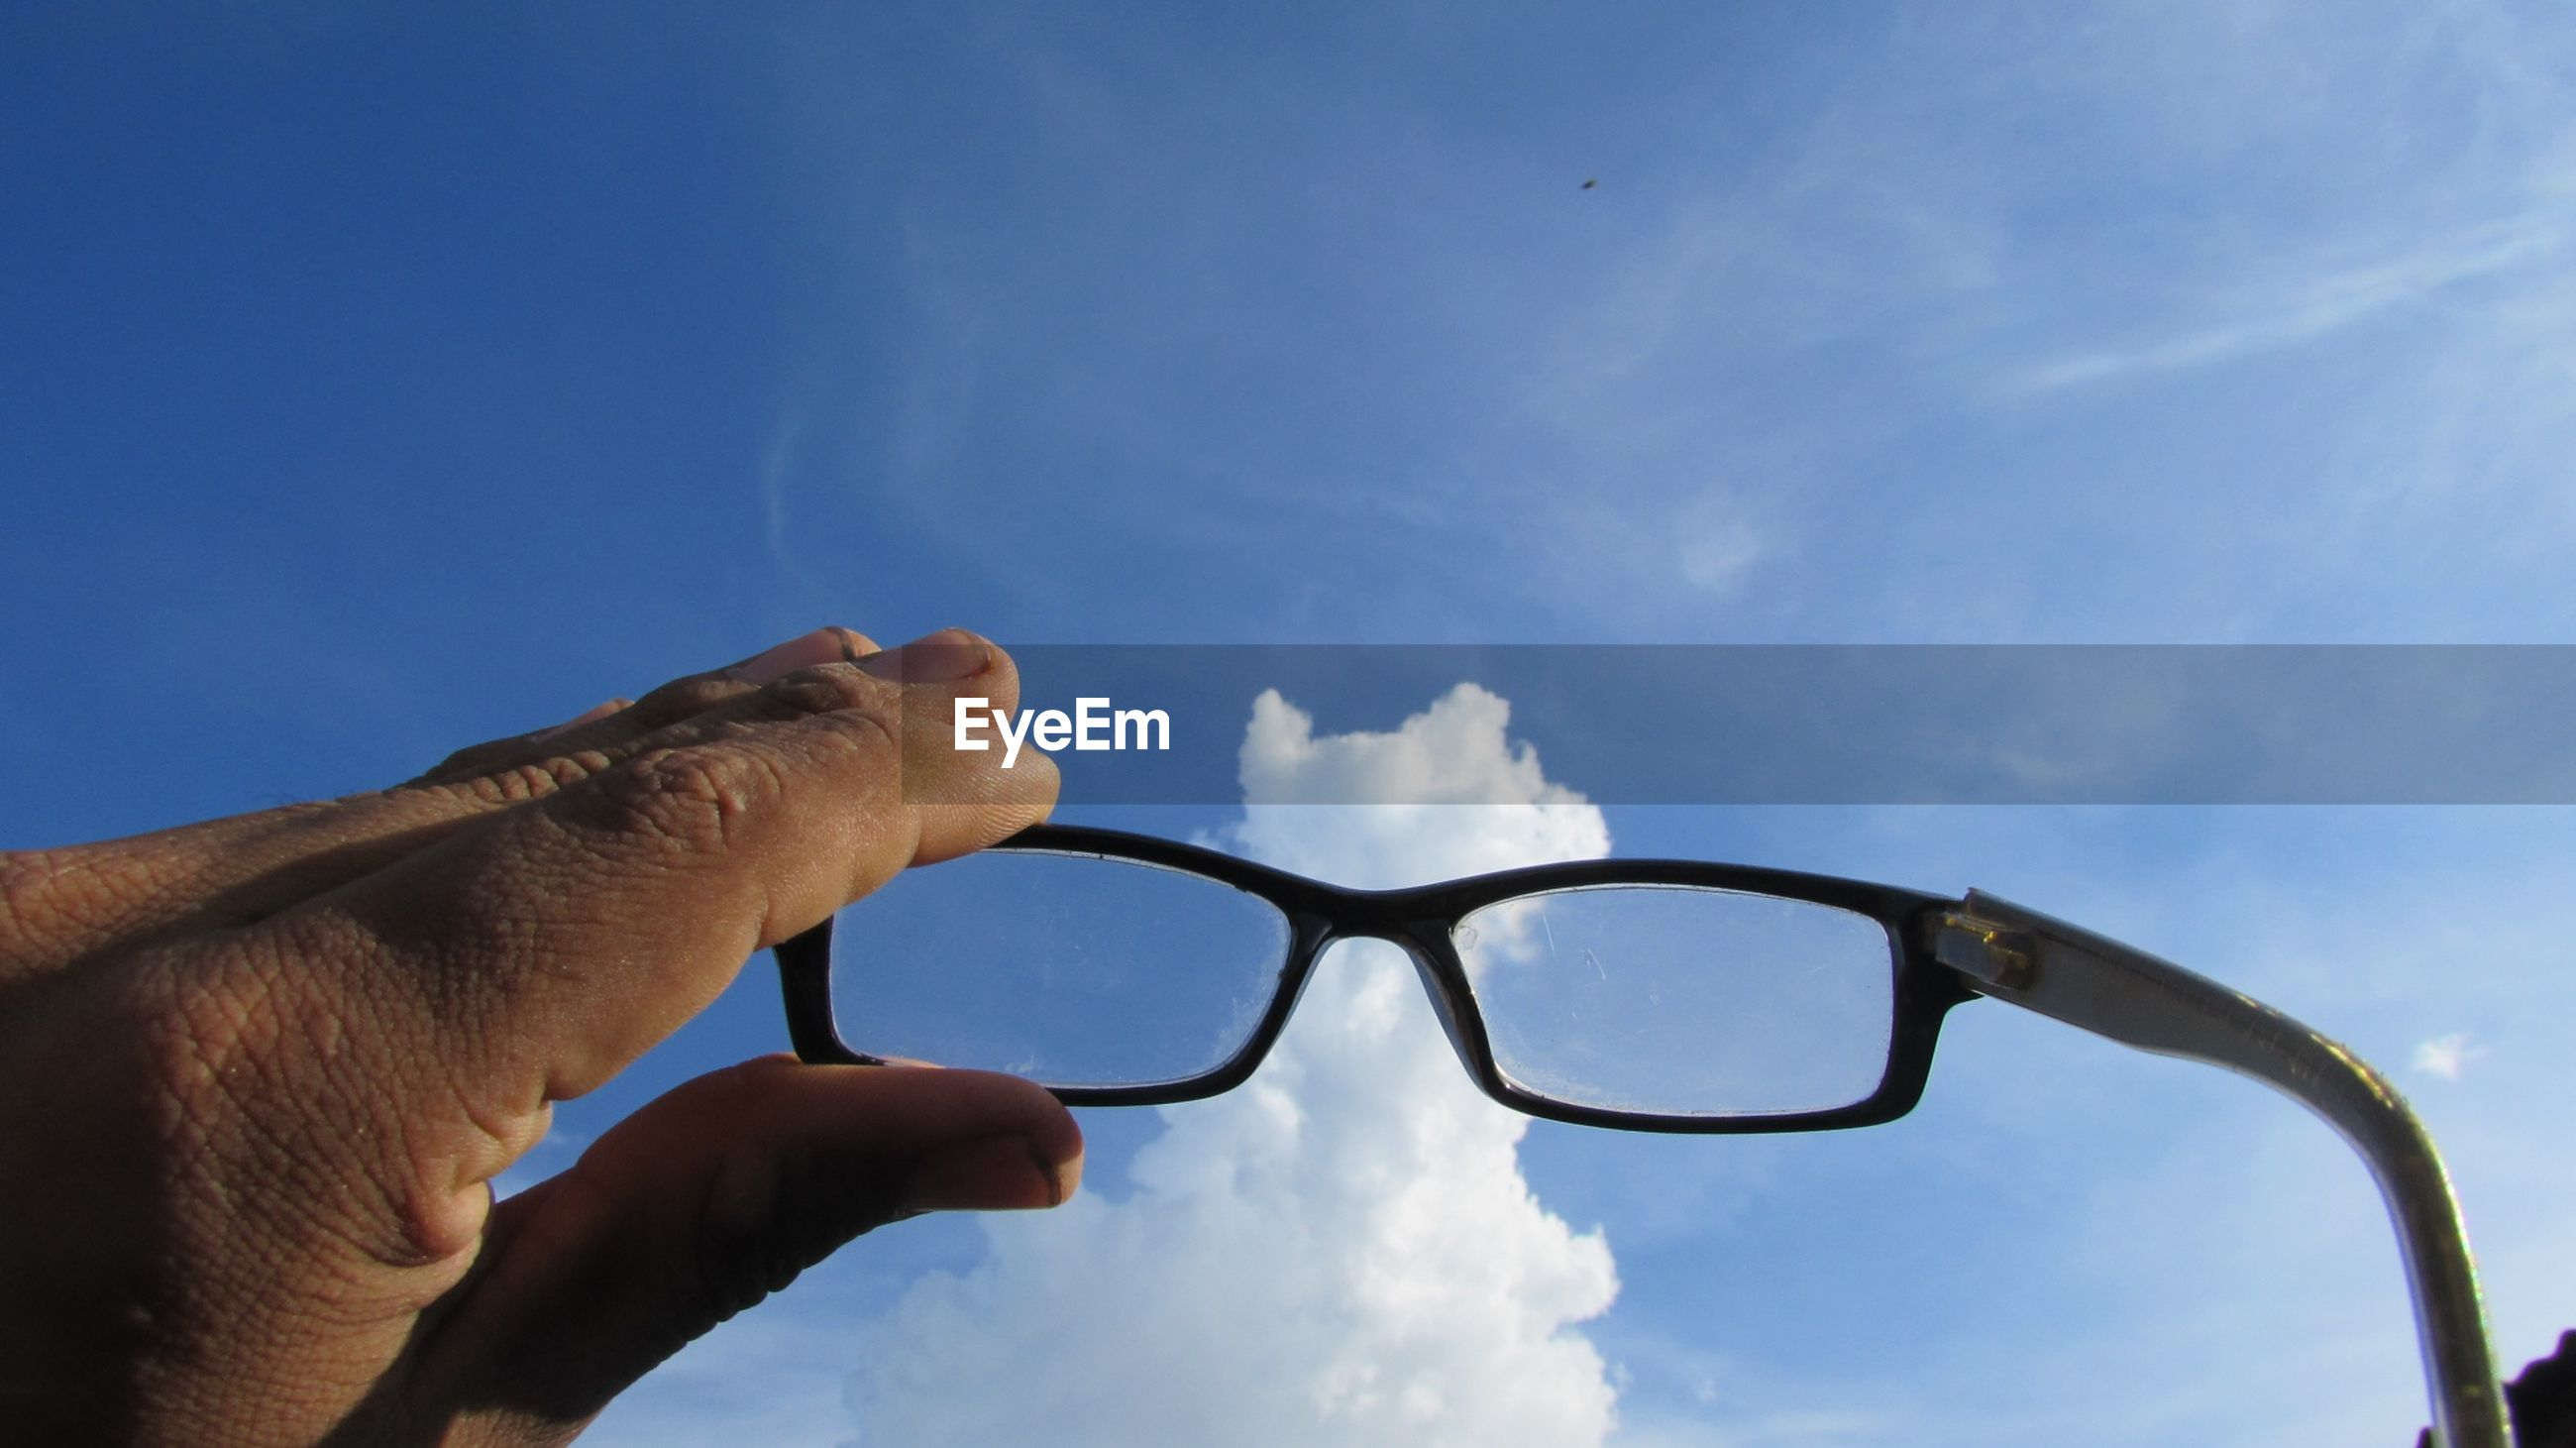 Cropped hand holding eyeglasses against blue sky